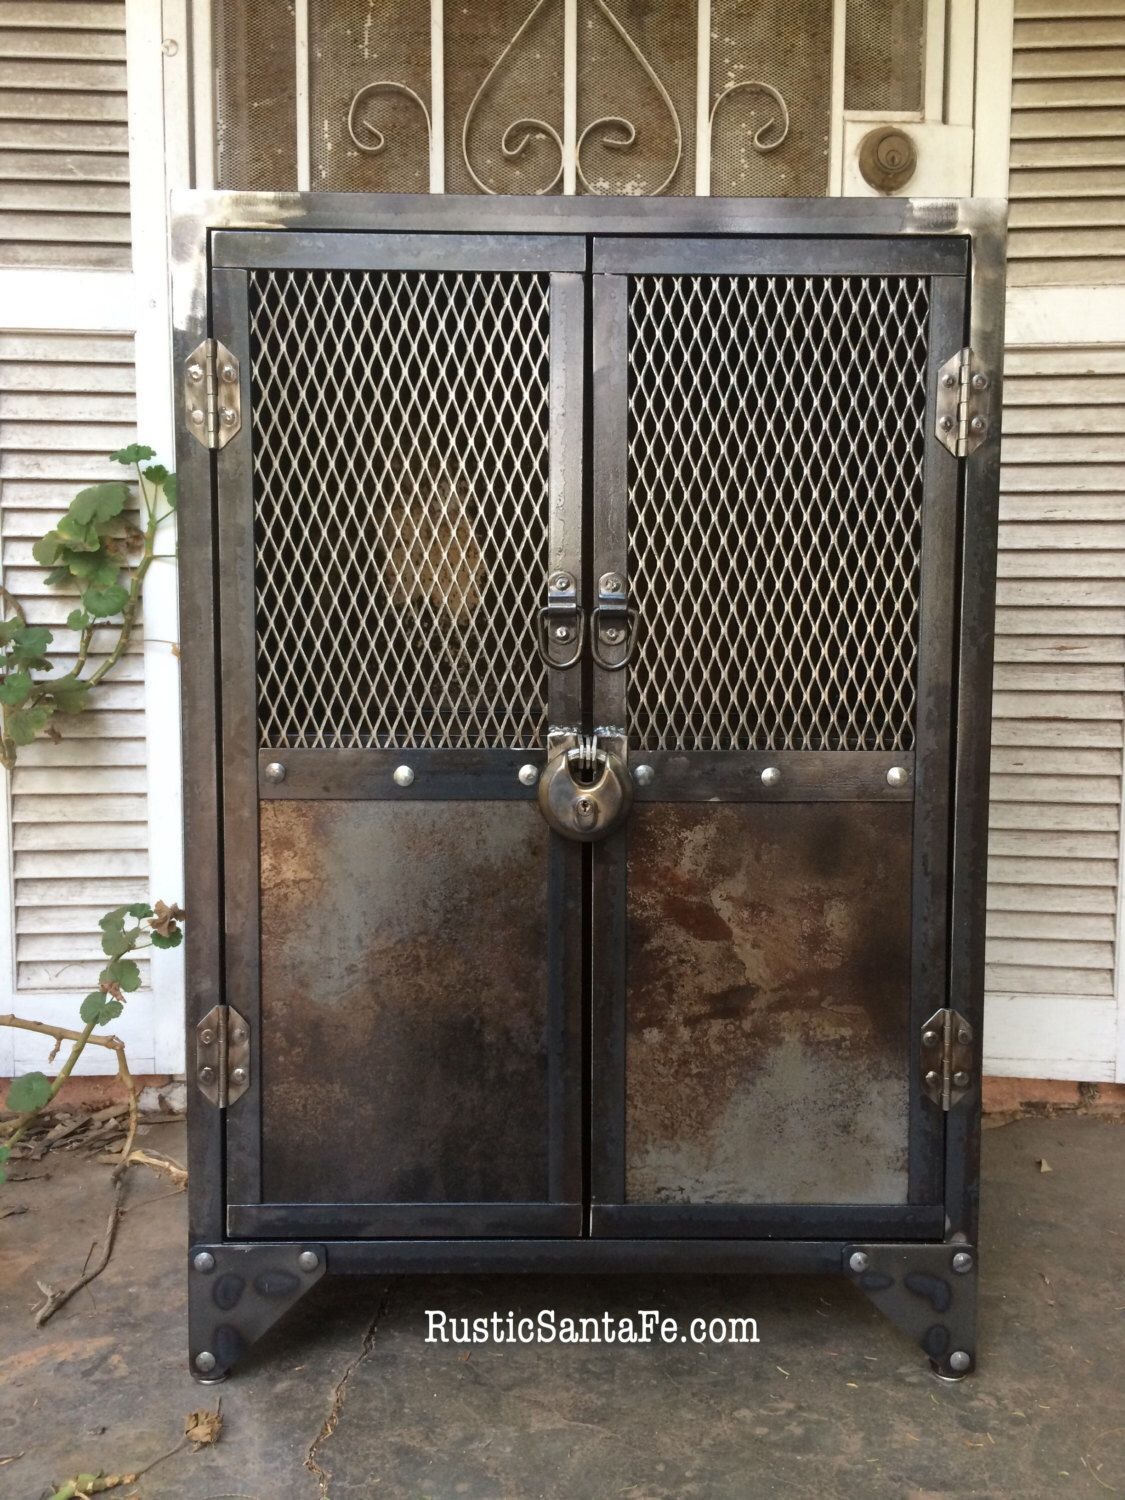 Genial Industrial Steel Locking Liquor Cabinet, Industrial Nightstand, Vintage  Locker, Rustic Cabinet, Wood And Metal Stand By RusticSantaFe On Etsy ...